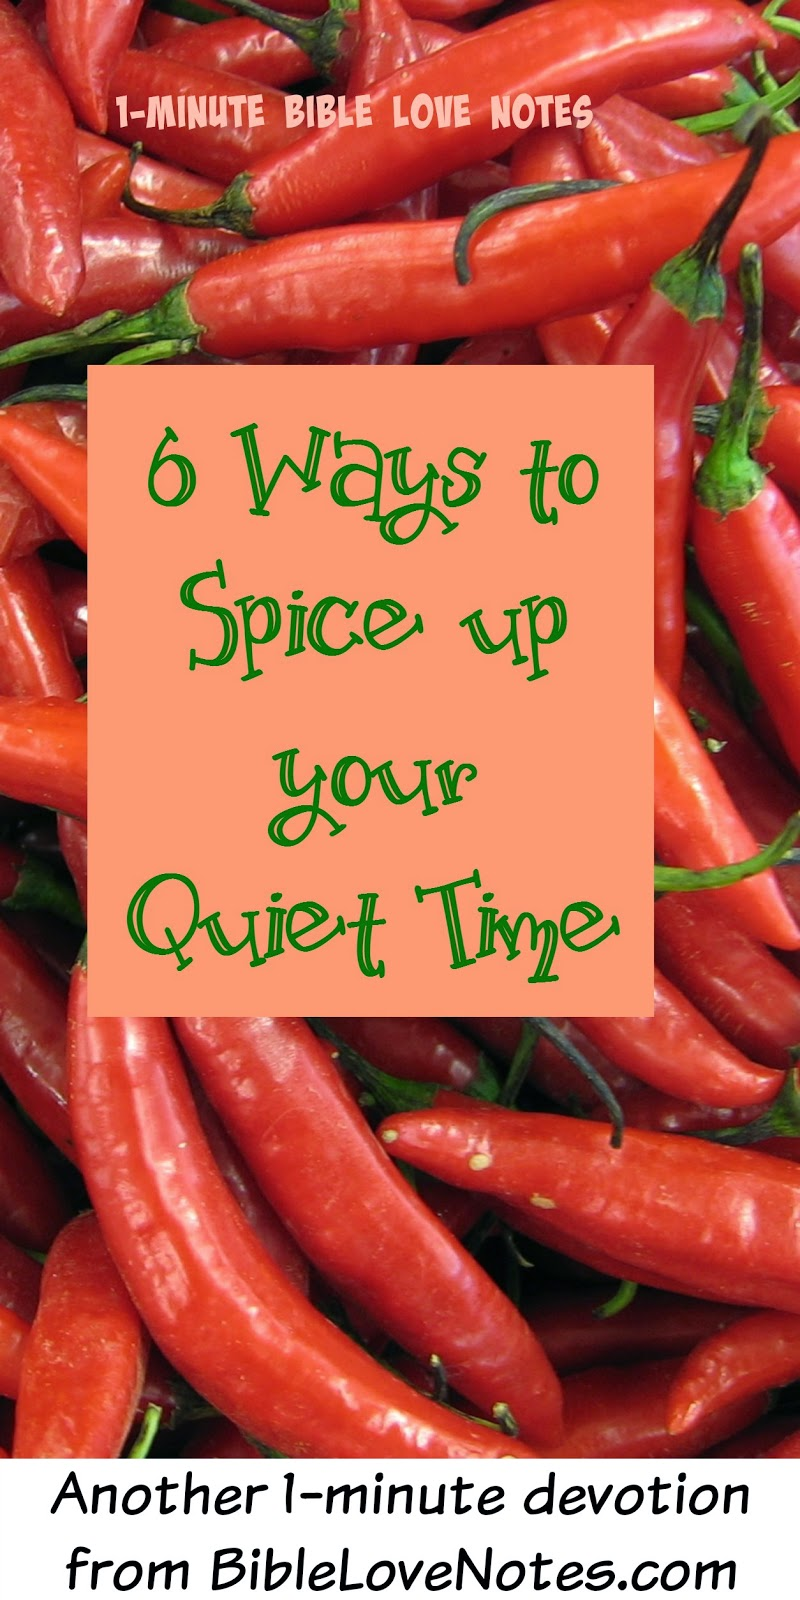 6 Ways to spice up your quiet time, making your quiet time more meaningful and interesting